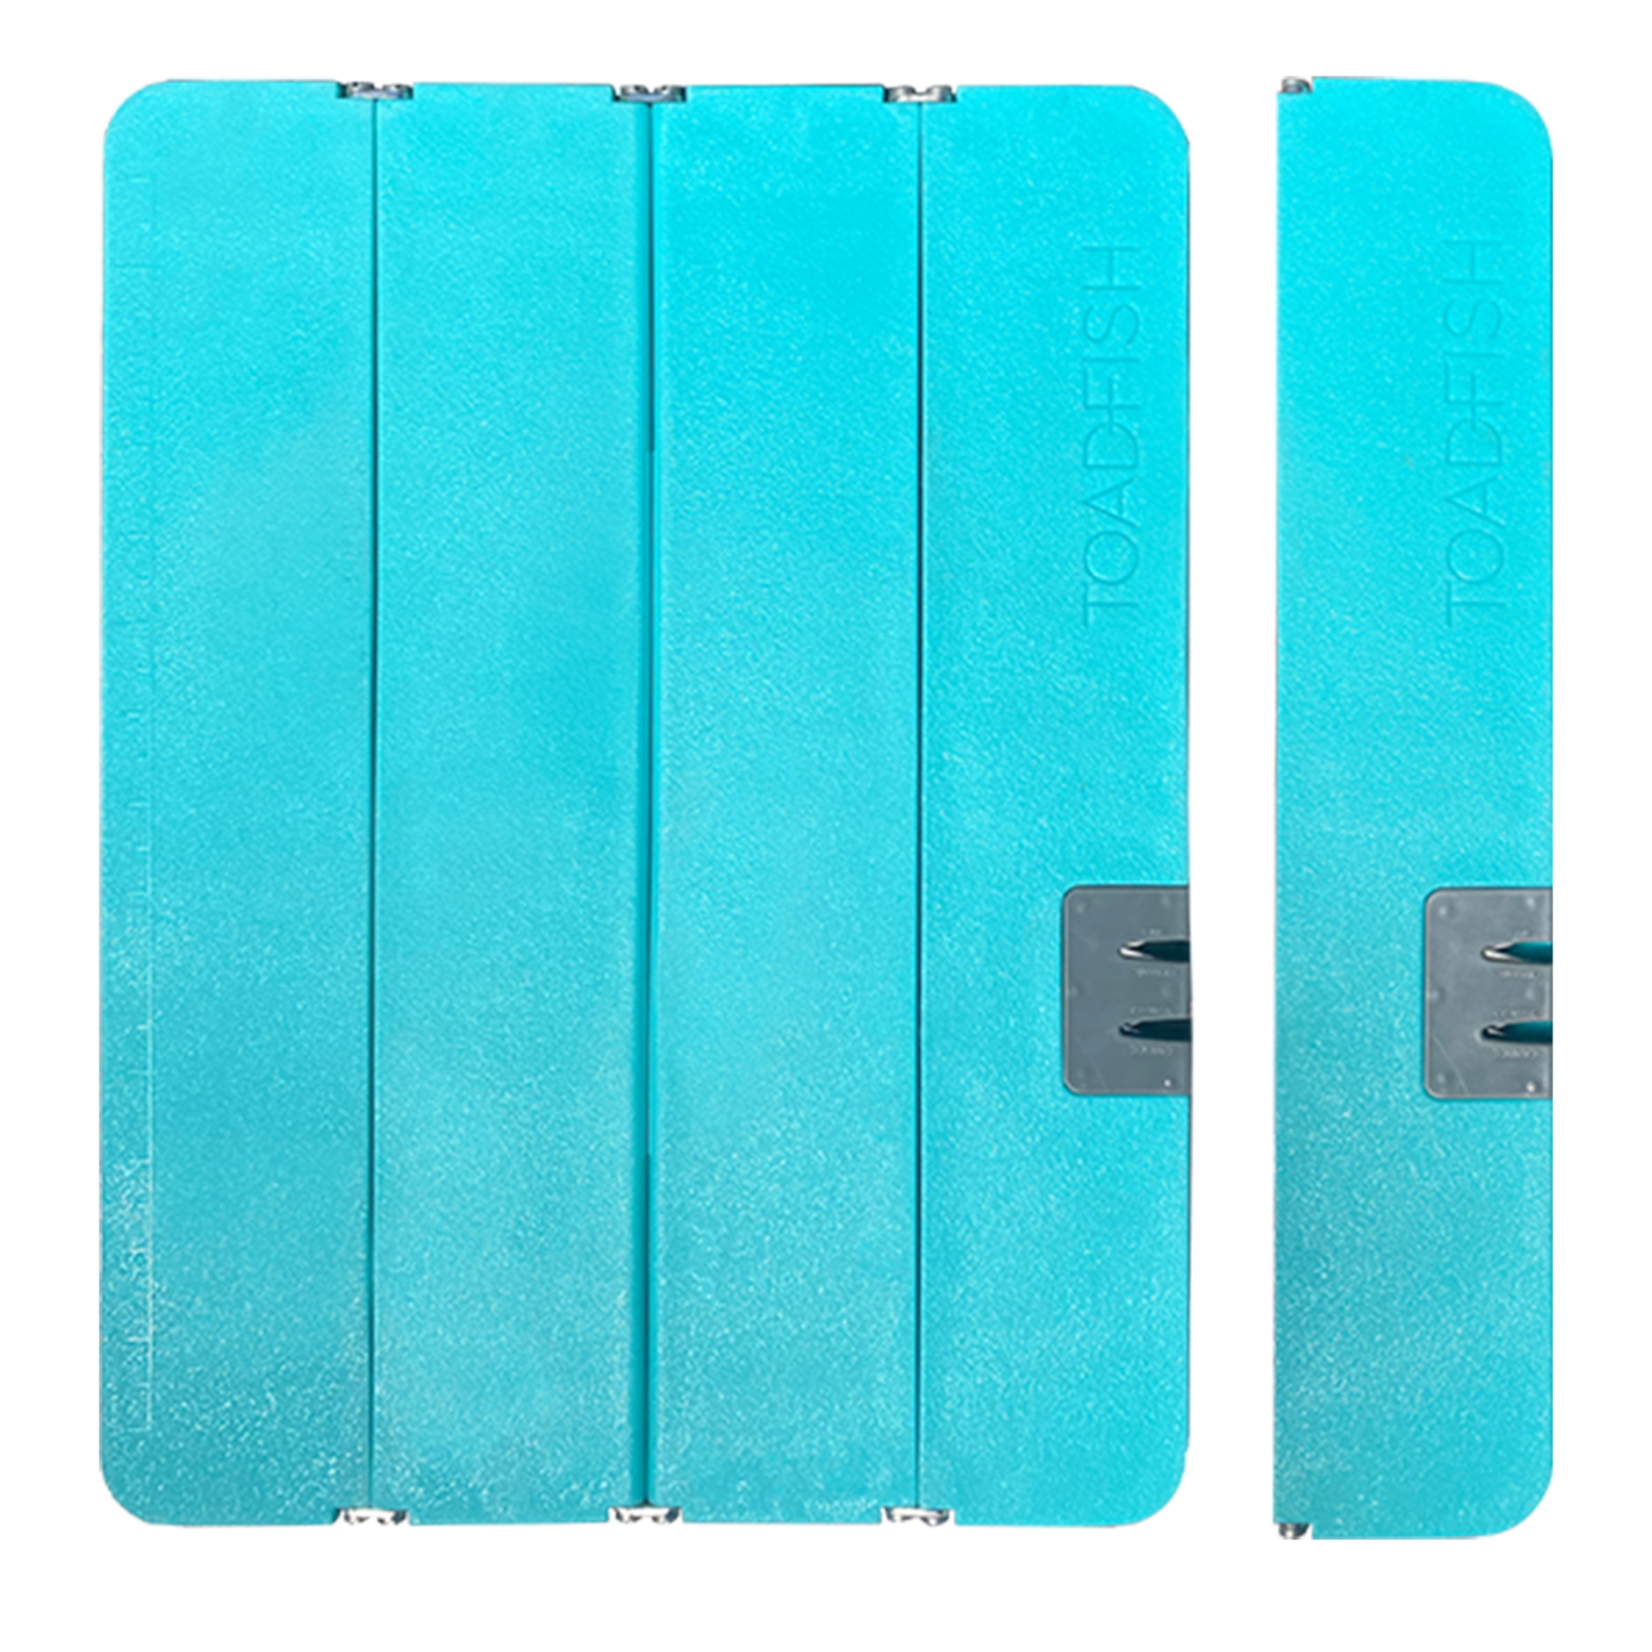 toadfish XL Toadfish Folding Cutting Board with Built in Knife Sharpener - Teal